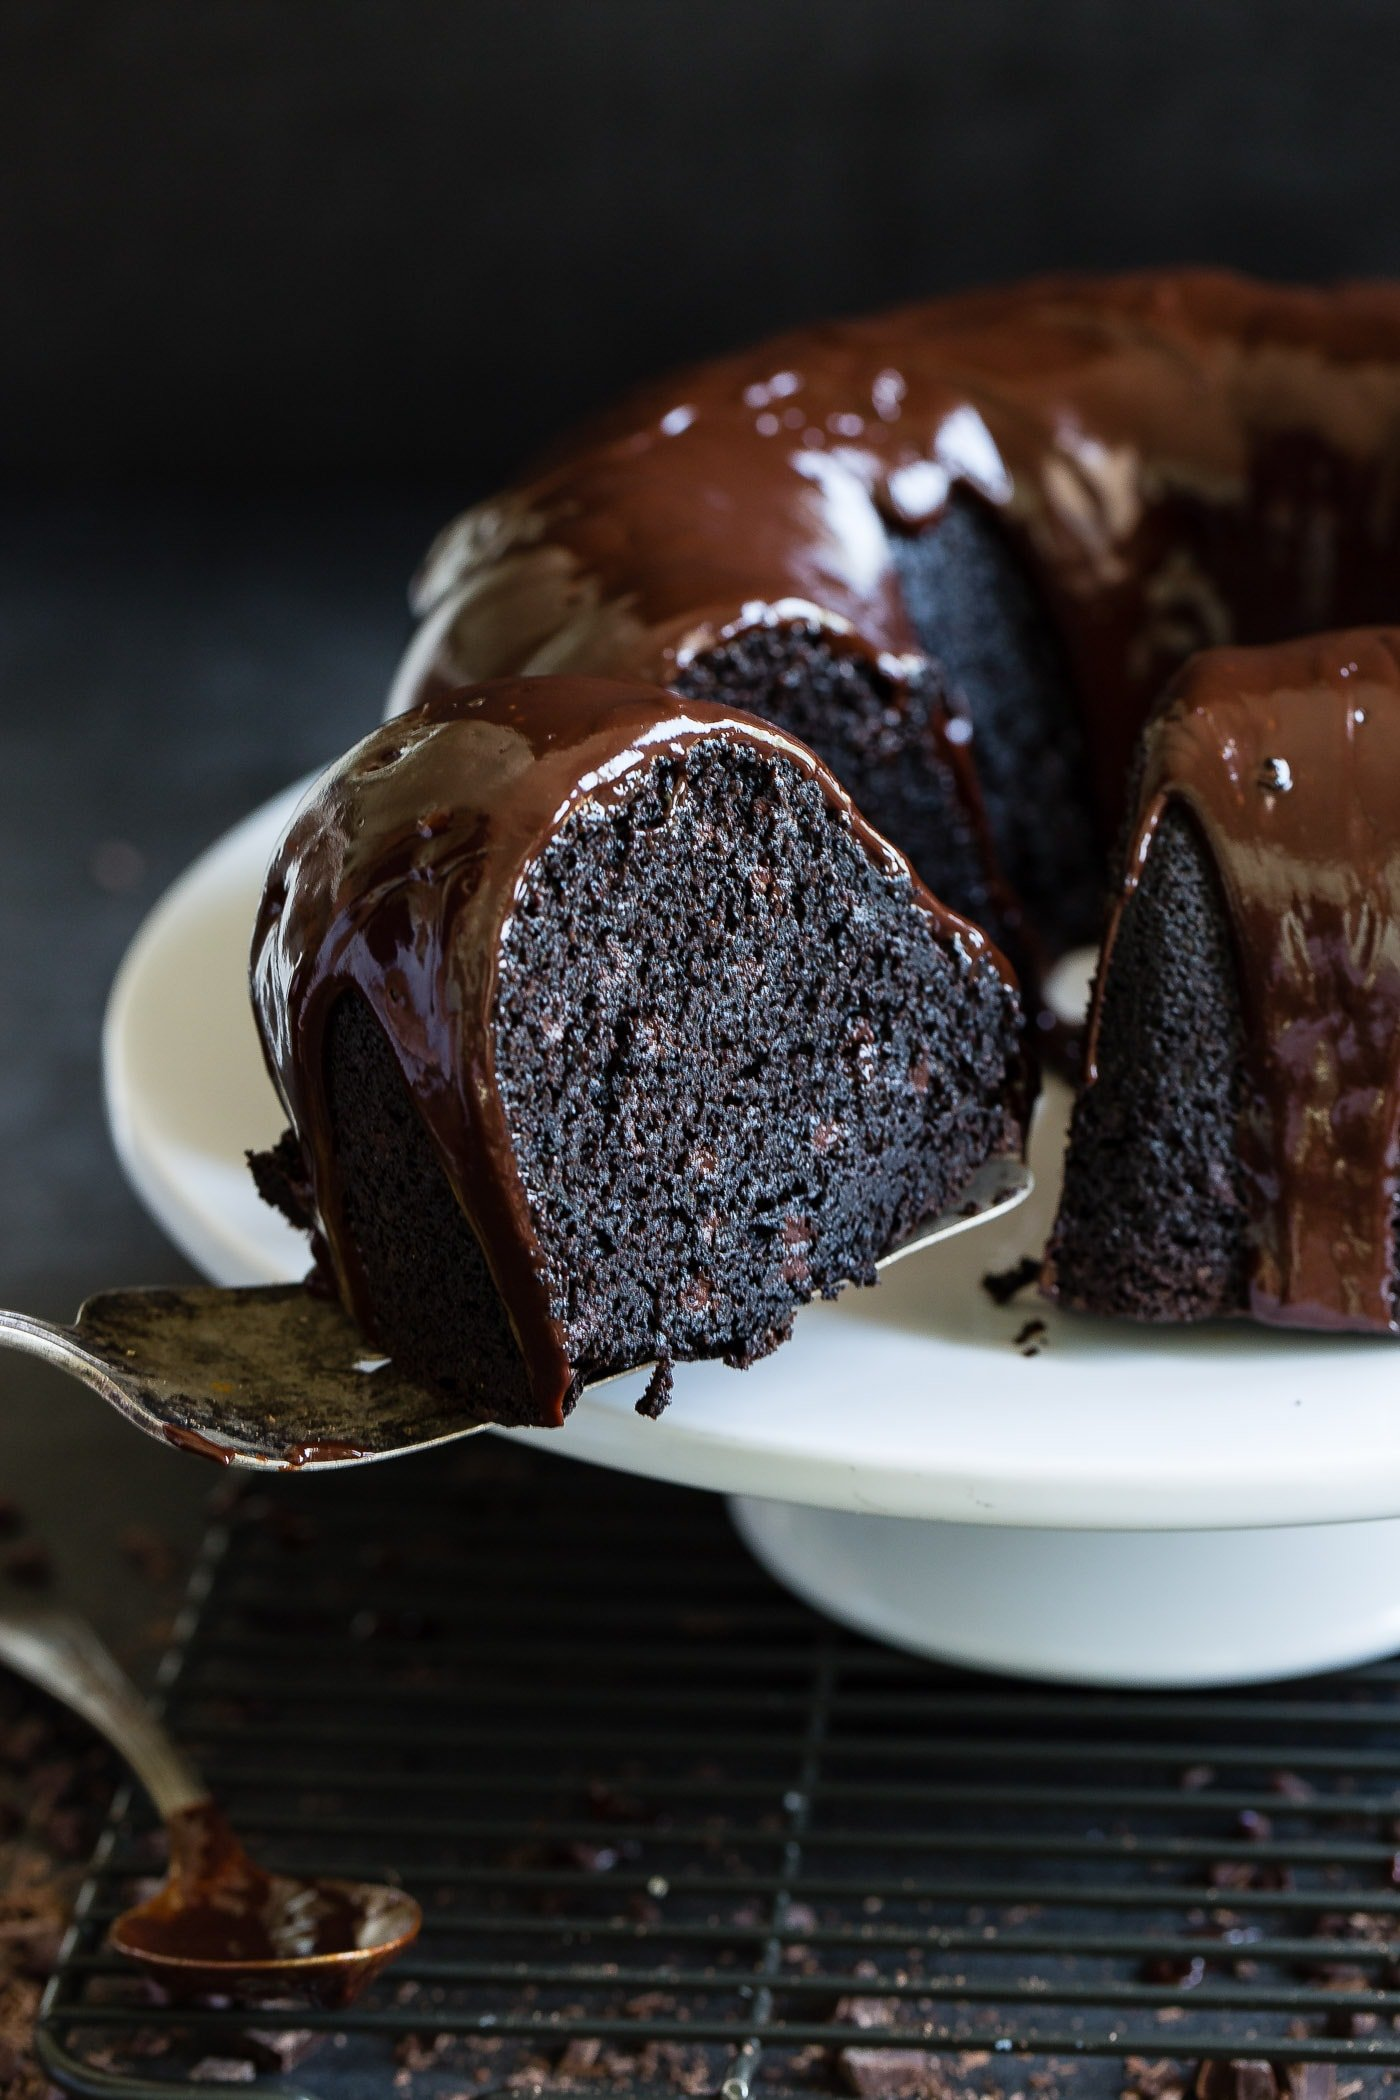 A slice of zucchini chocolate bundt cake being removed from the cake. The inside of the cake is dark, moist chocolate and there is a chocolate glaze on top of the cake.